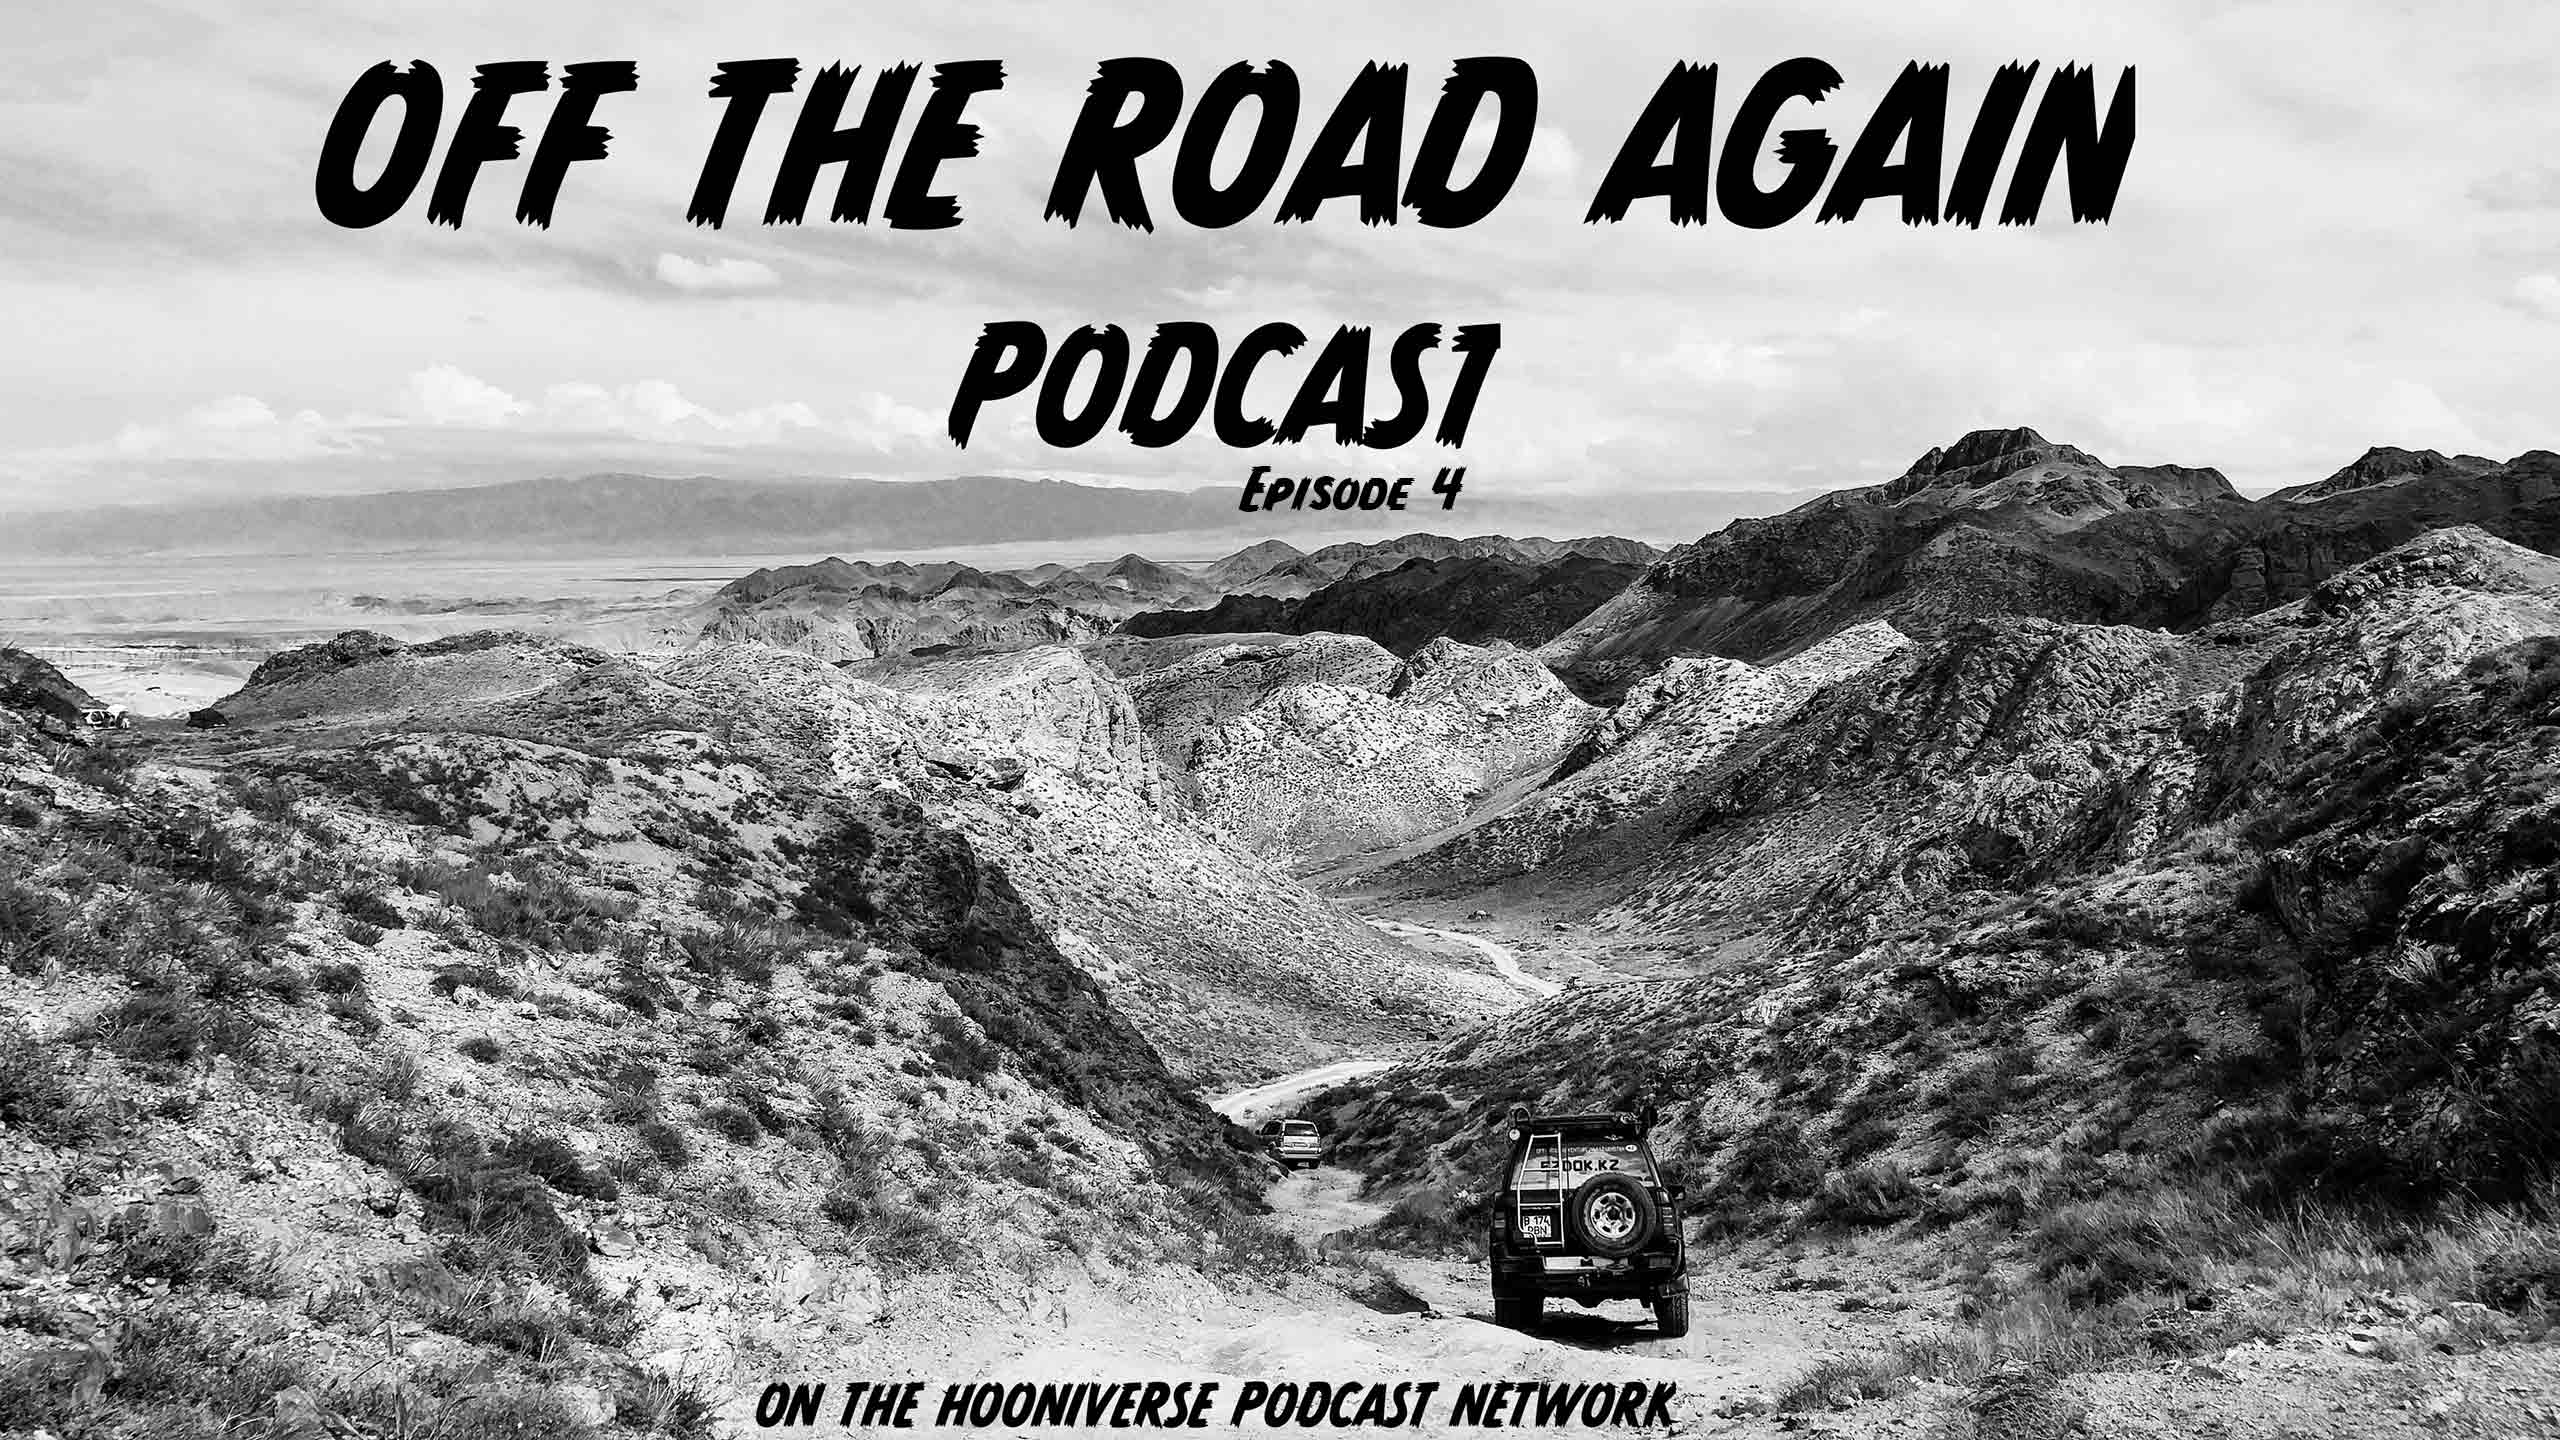 Off the Road Again Podcast: Episode 4 - Mogs & Buses